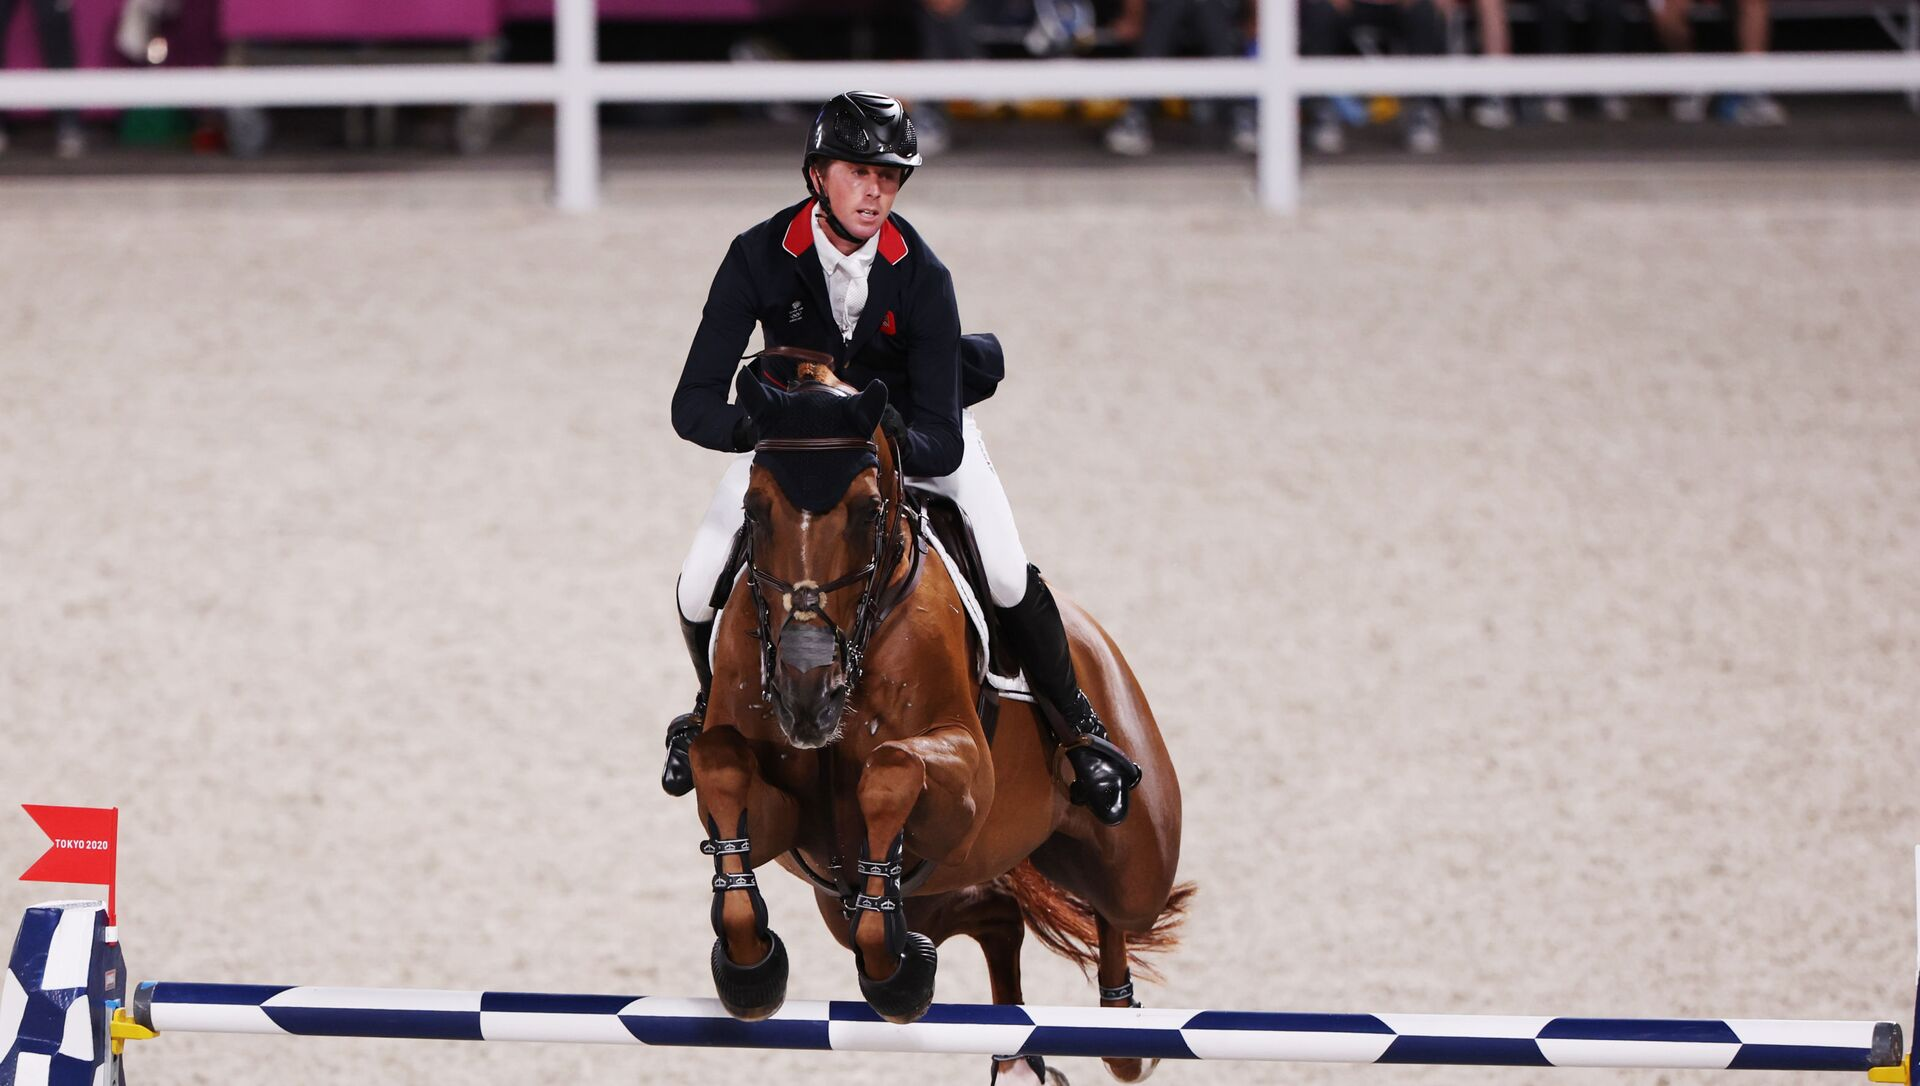 Tokyo 2020 Olympics - Equestrian - Jumping - Individual - Final - Equestrian Park - Tokyo, Japan - August 4, 2021. Ben Maher of Britain on his horse Explosion W competes - Sputnik International, 1920, 04.08.2021